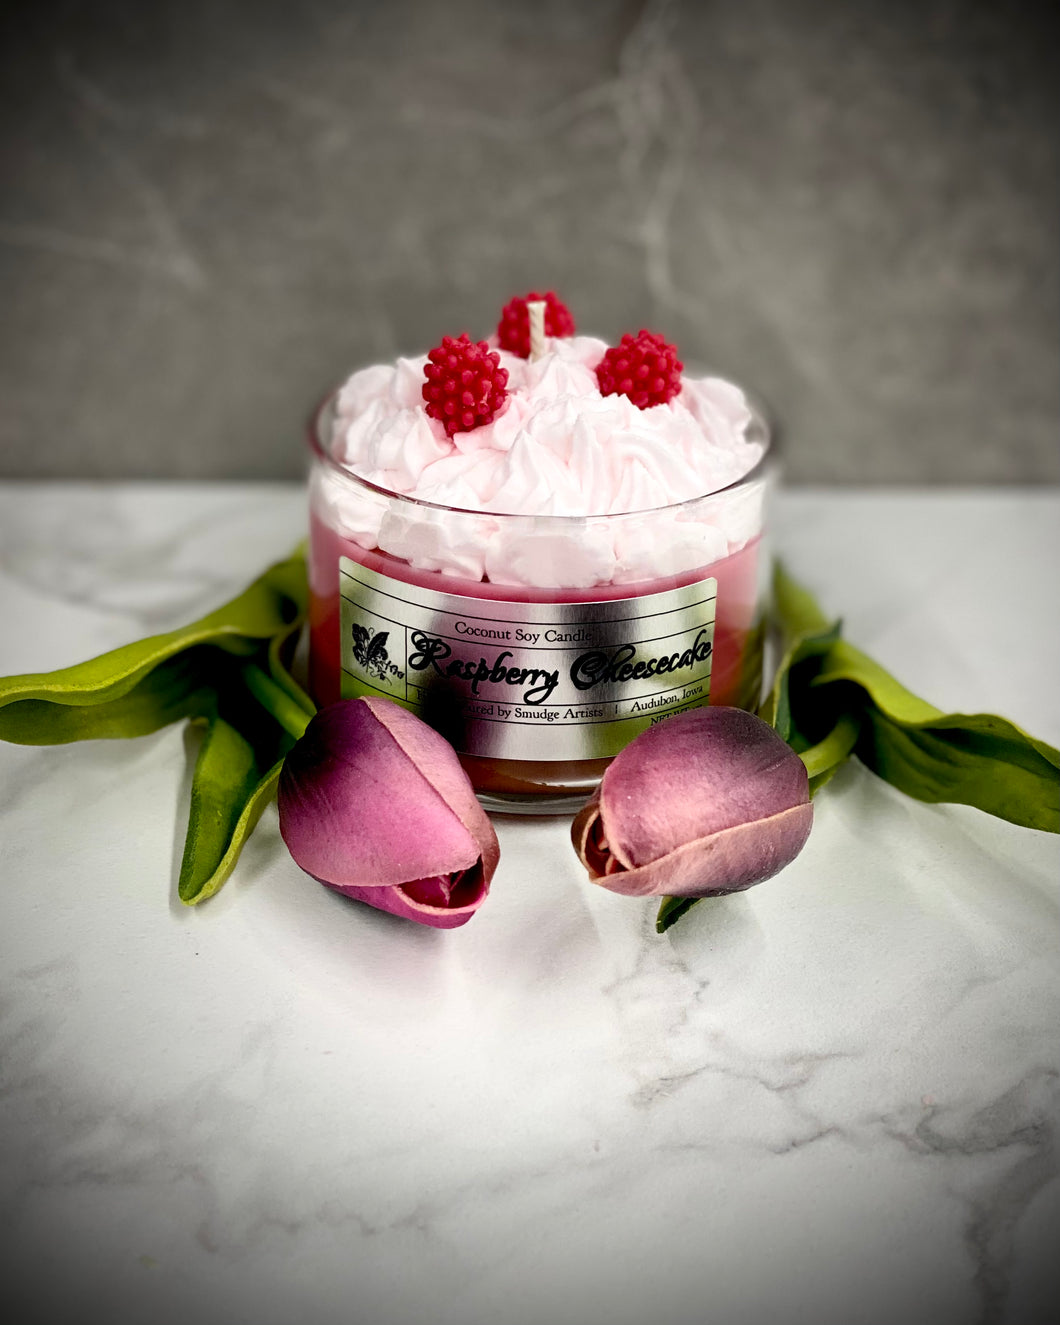 Raspberry Cheesecake Mini Tumbler Candle 4oz